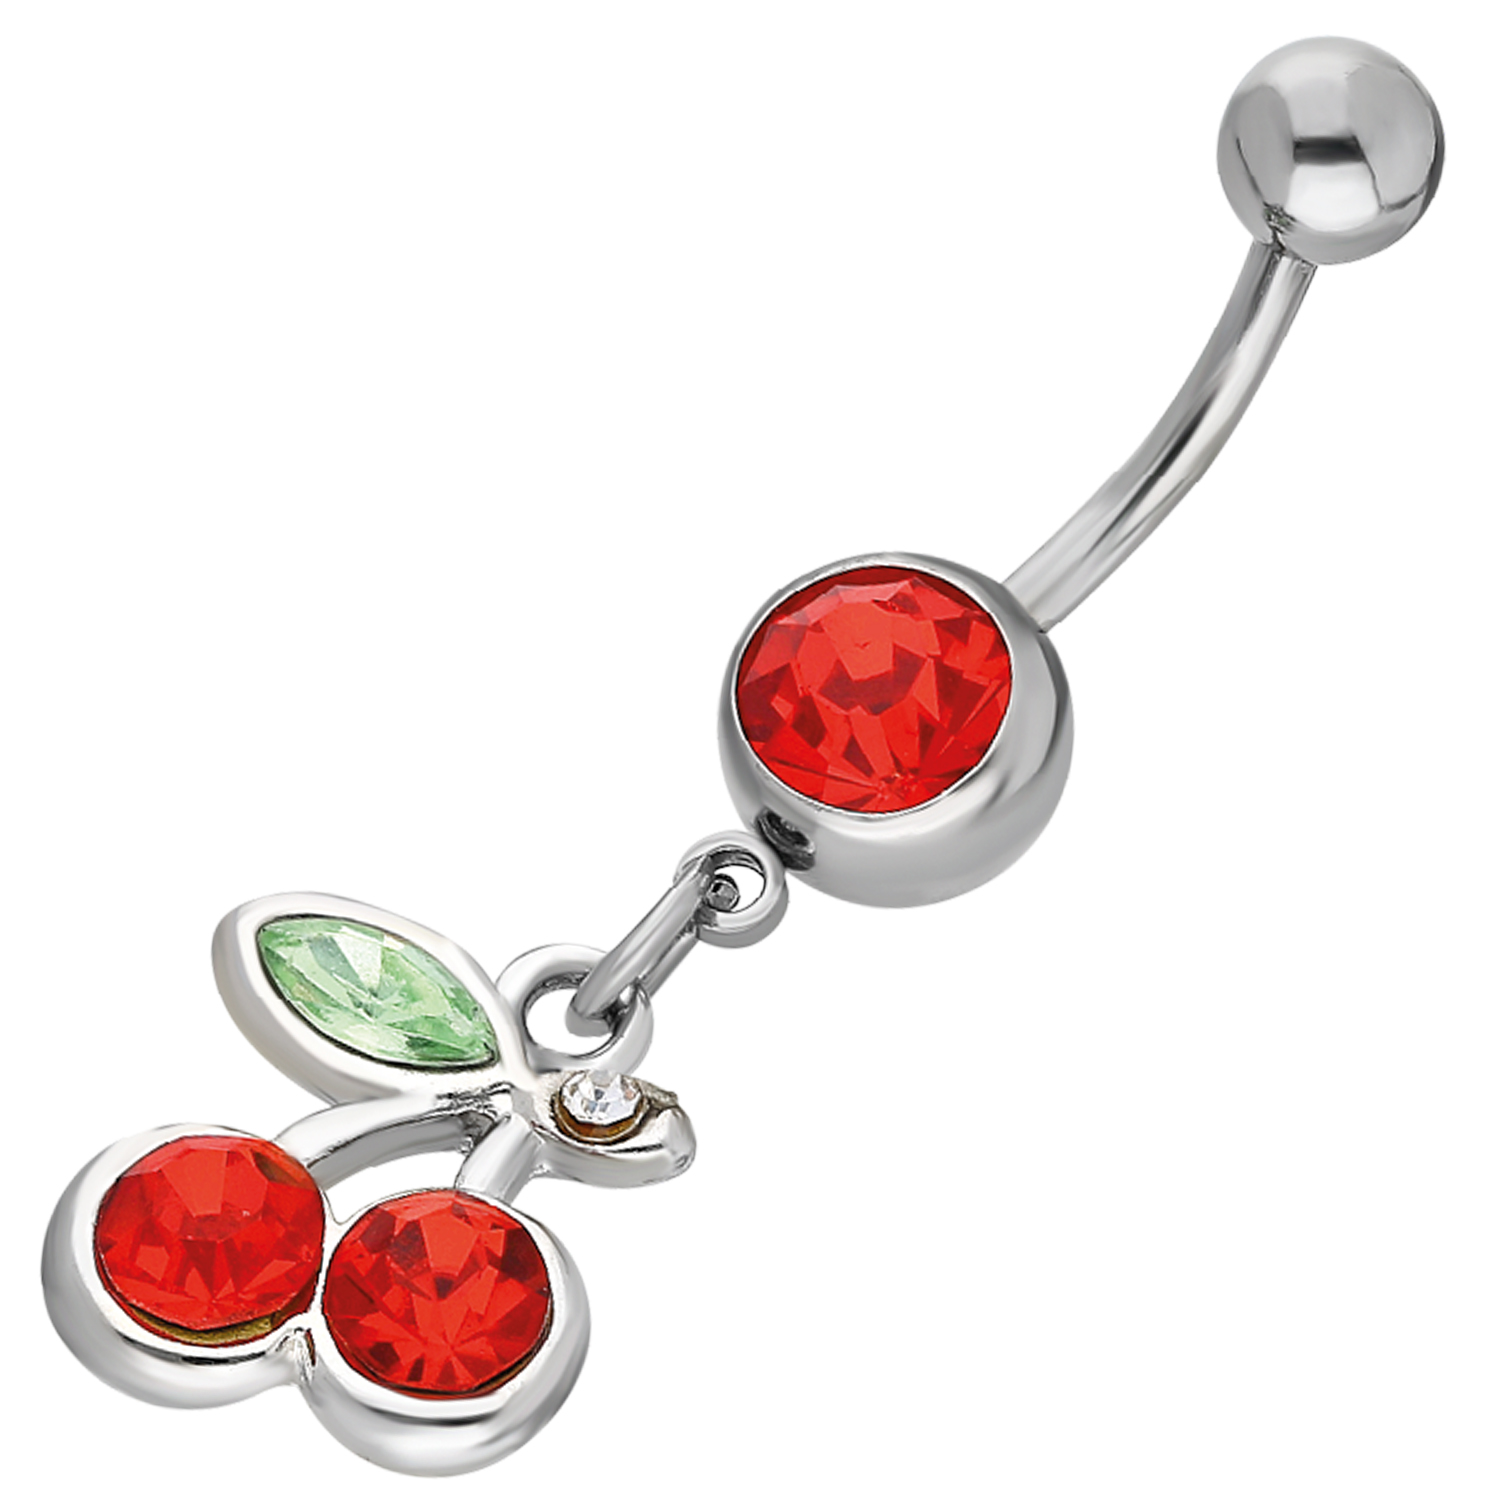 Belly Piercing:PRG256A